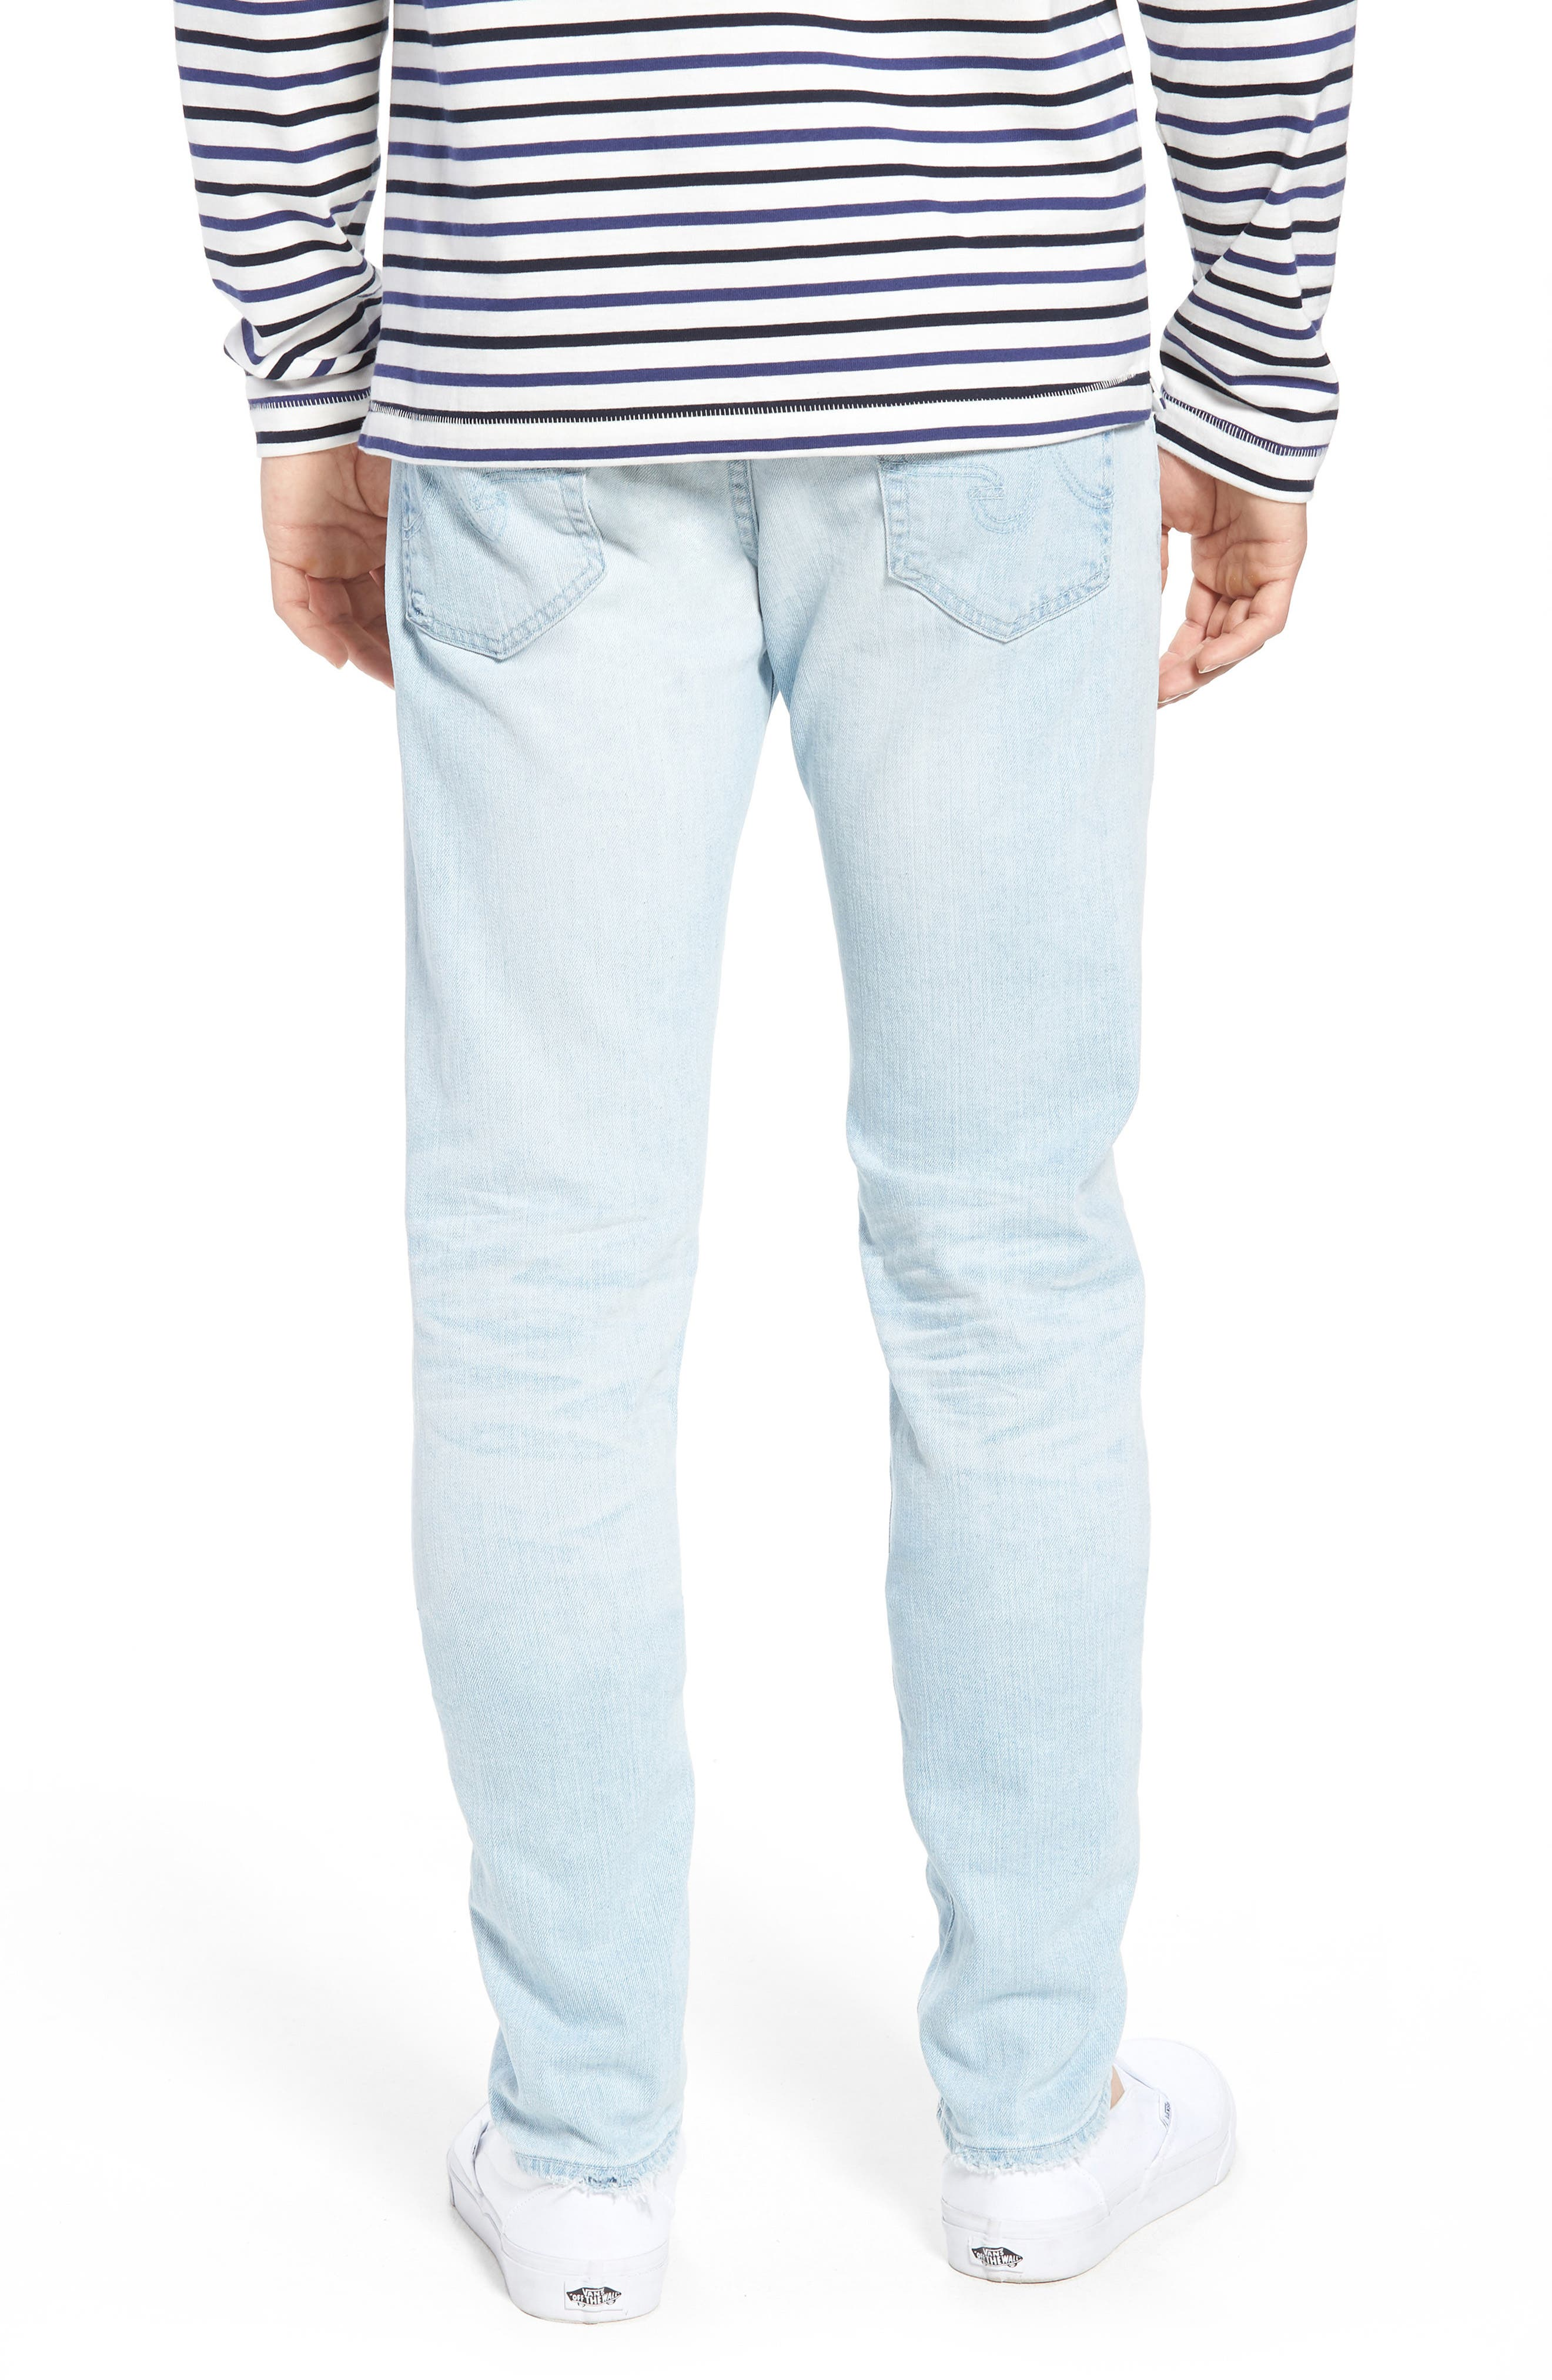 Dylan Skinny Fit Jeans,                             Alternate thumbnail 2, color,                             400